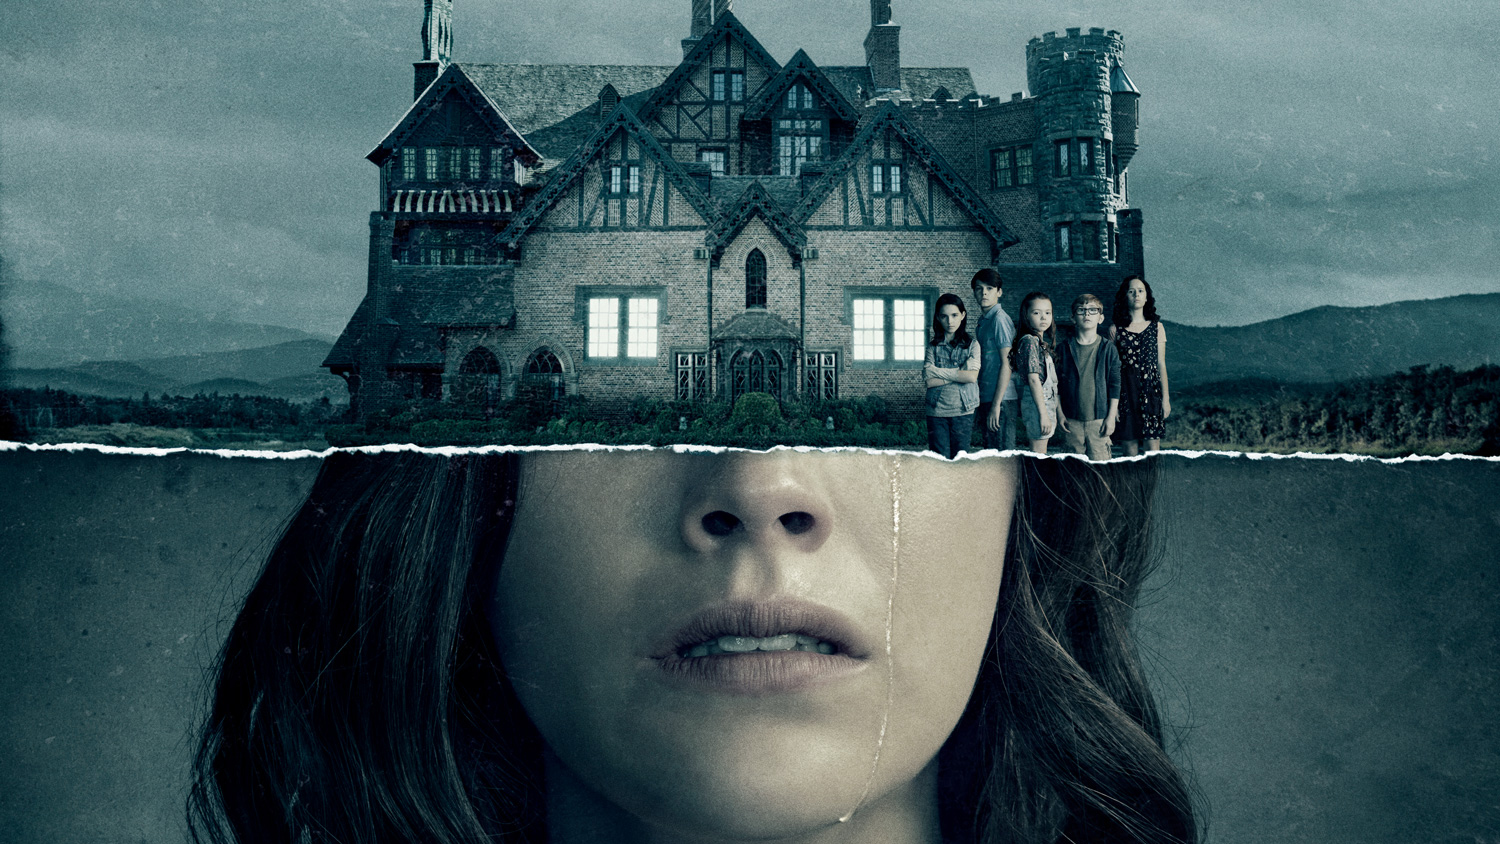 The Haunting of Hill House season 2: Bly Manor, release date, and what we know